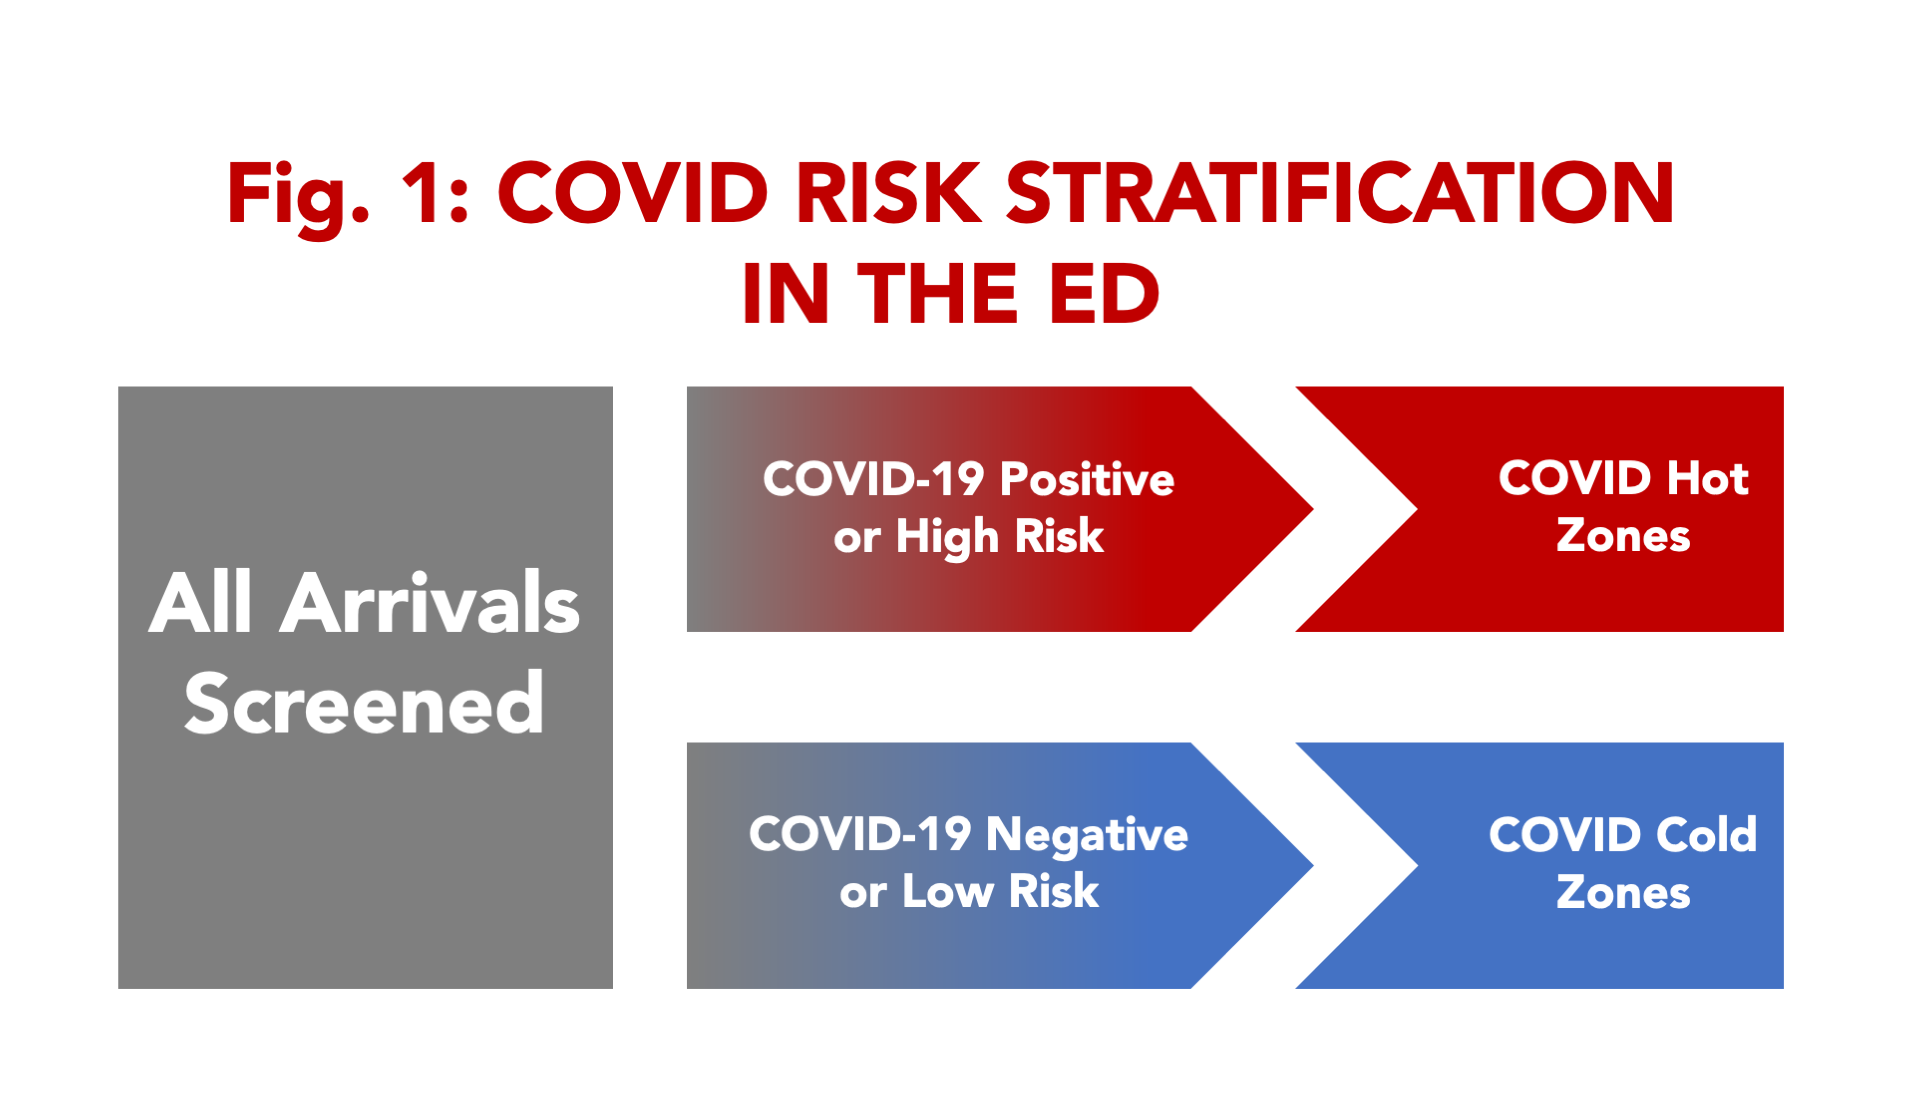 COVID RISK STRATIFICATION IN THE ED